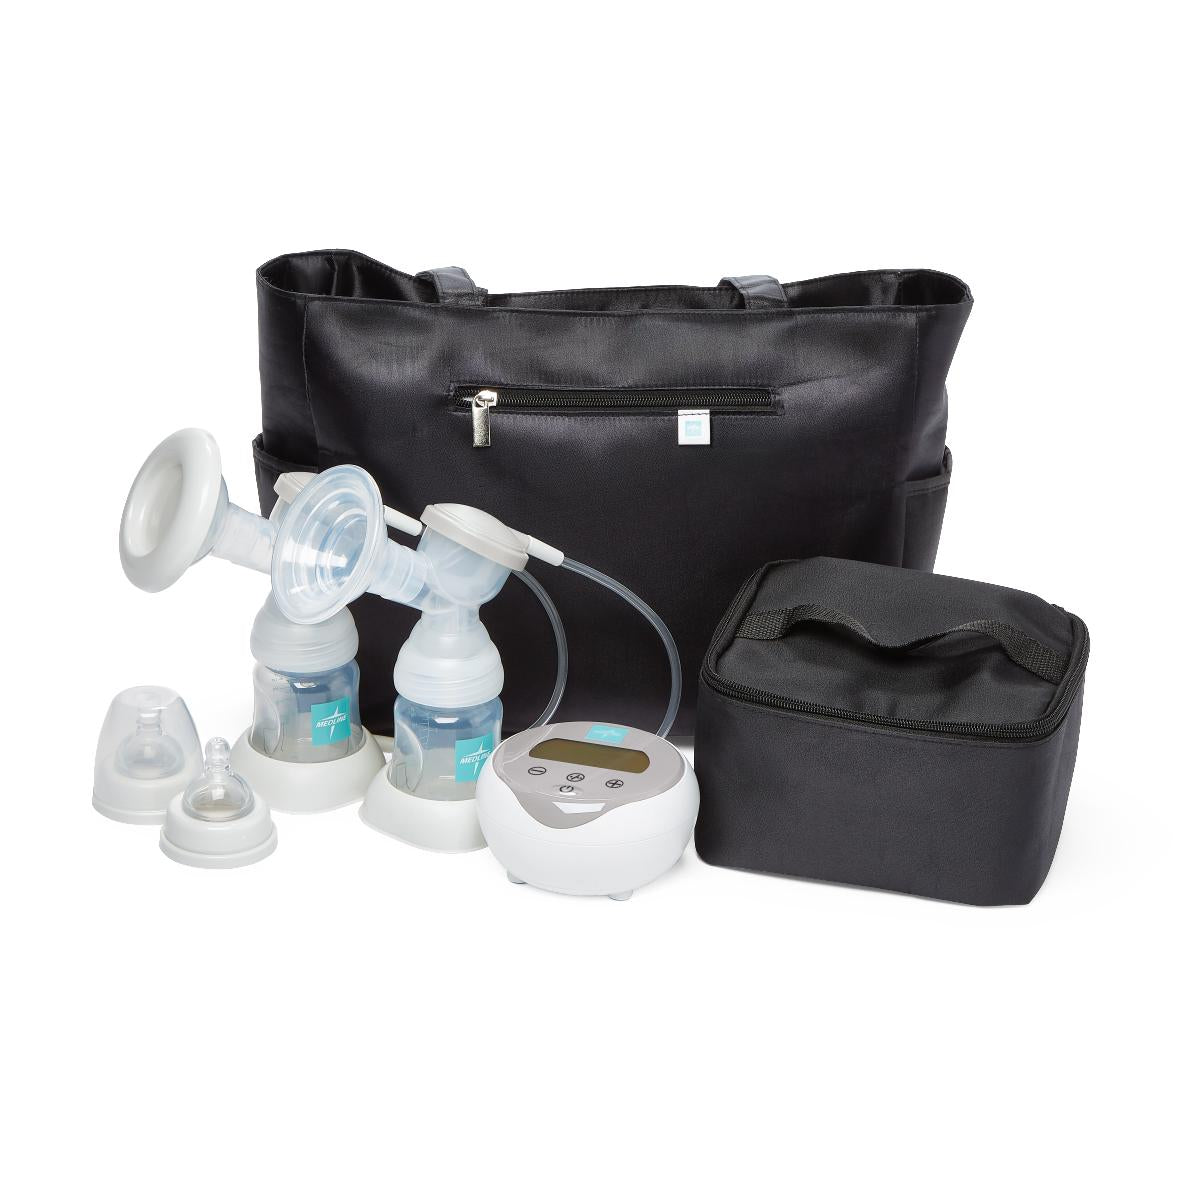 Double Electric Breast Pump Kit w/ Six Bottles - Medical Supply Surplus